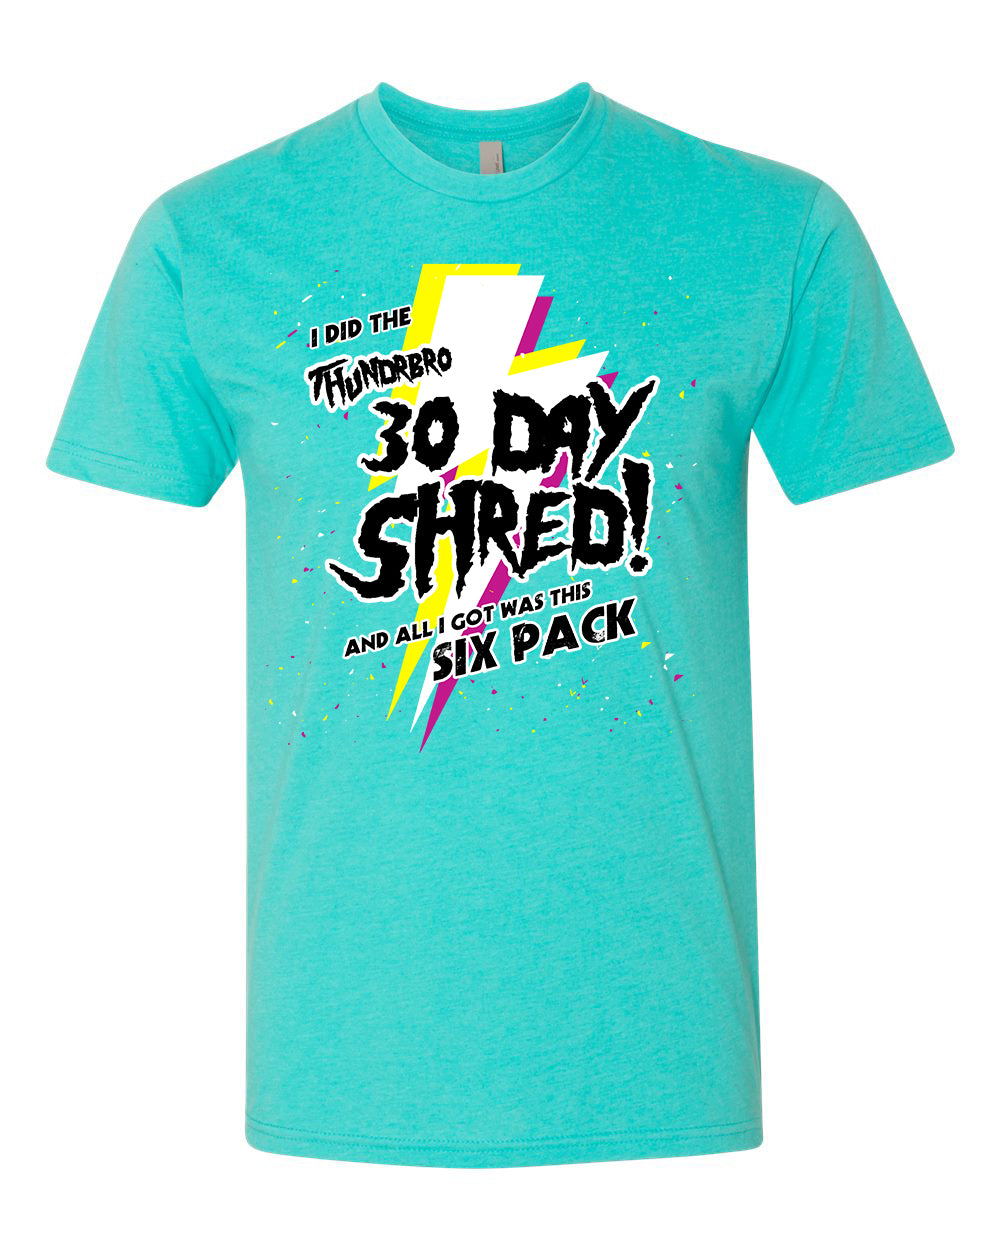 30 Day Shred Completion T-Shirt